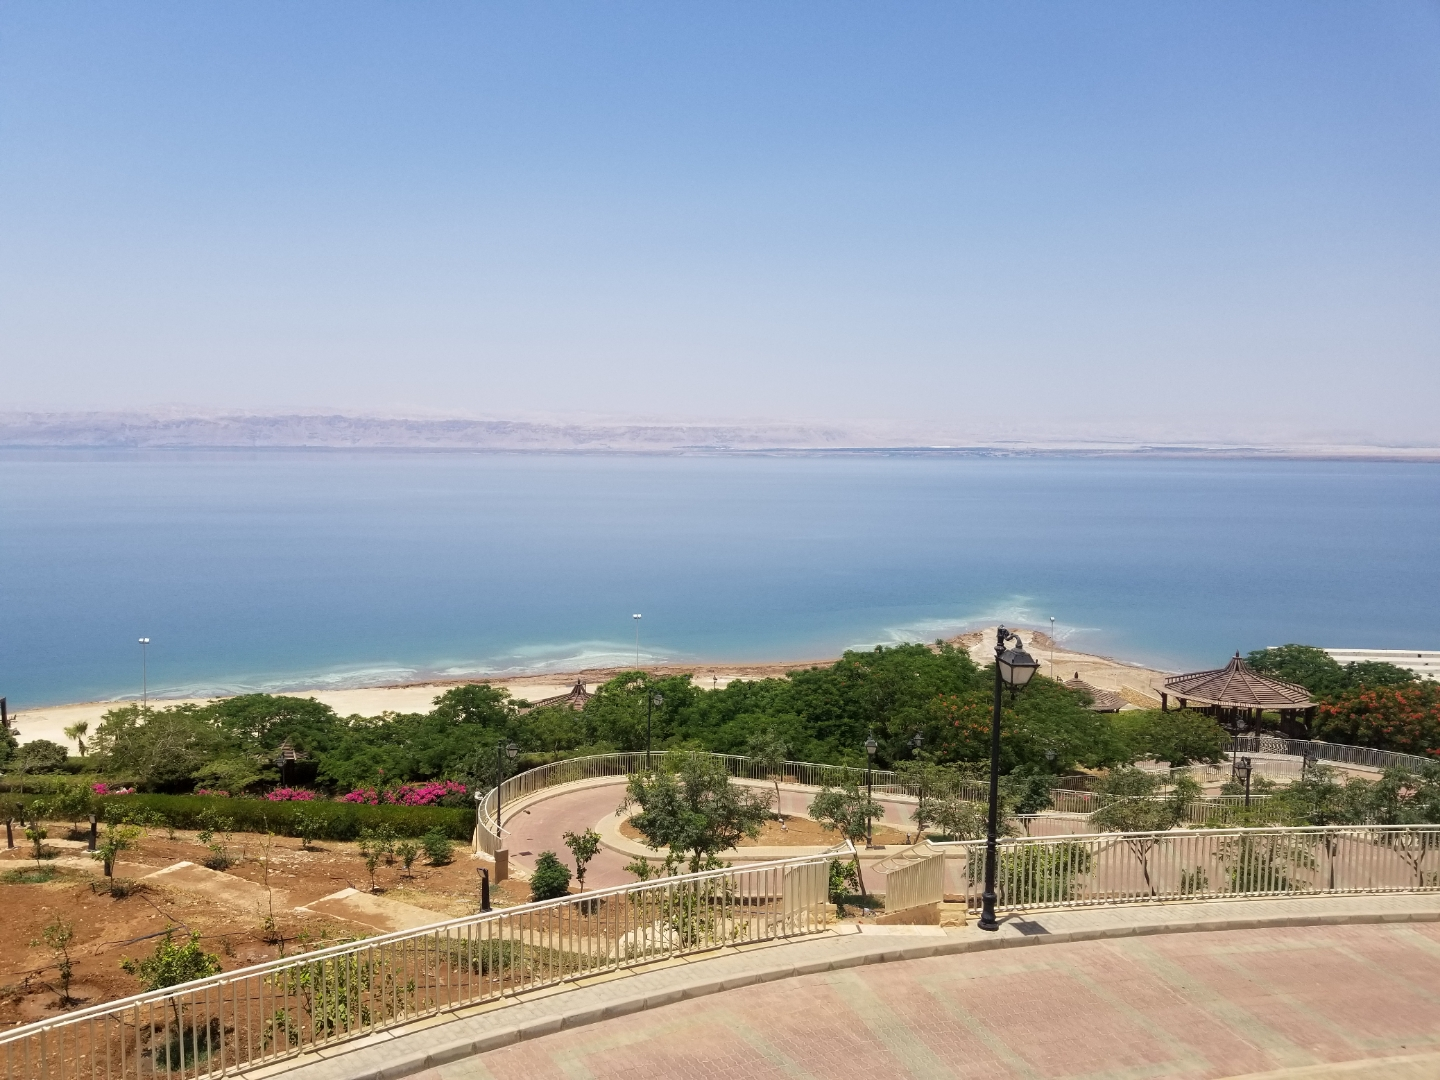 The Dead Sea, lowest point on Earth, was also seemingly the hottest place on Earth during a heat wave. Photo credit: Morrill, 2019.